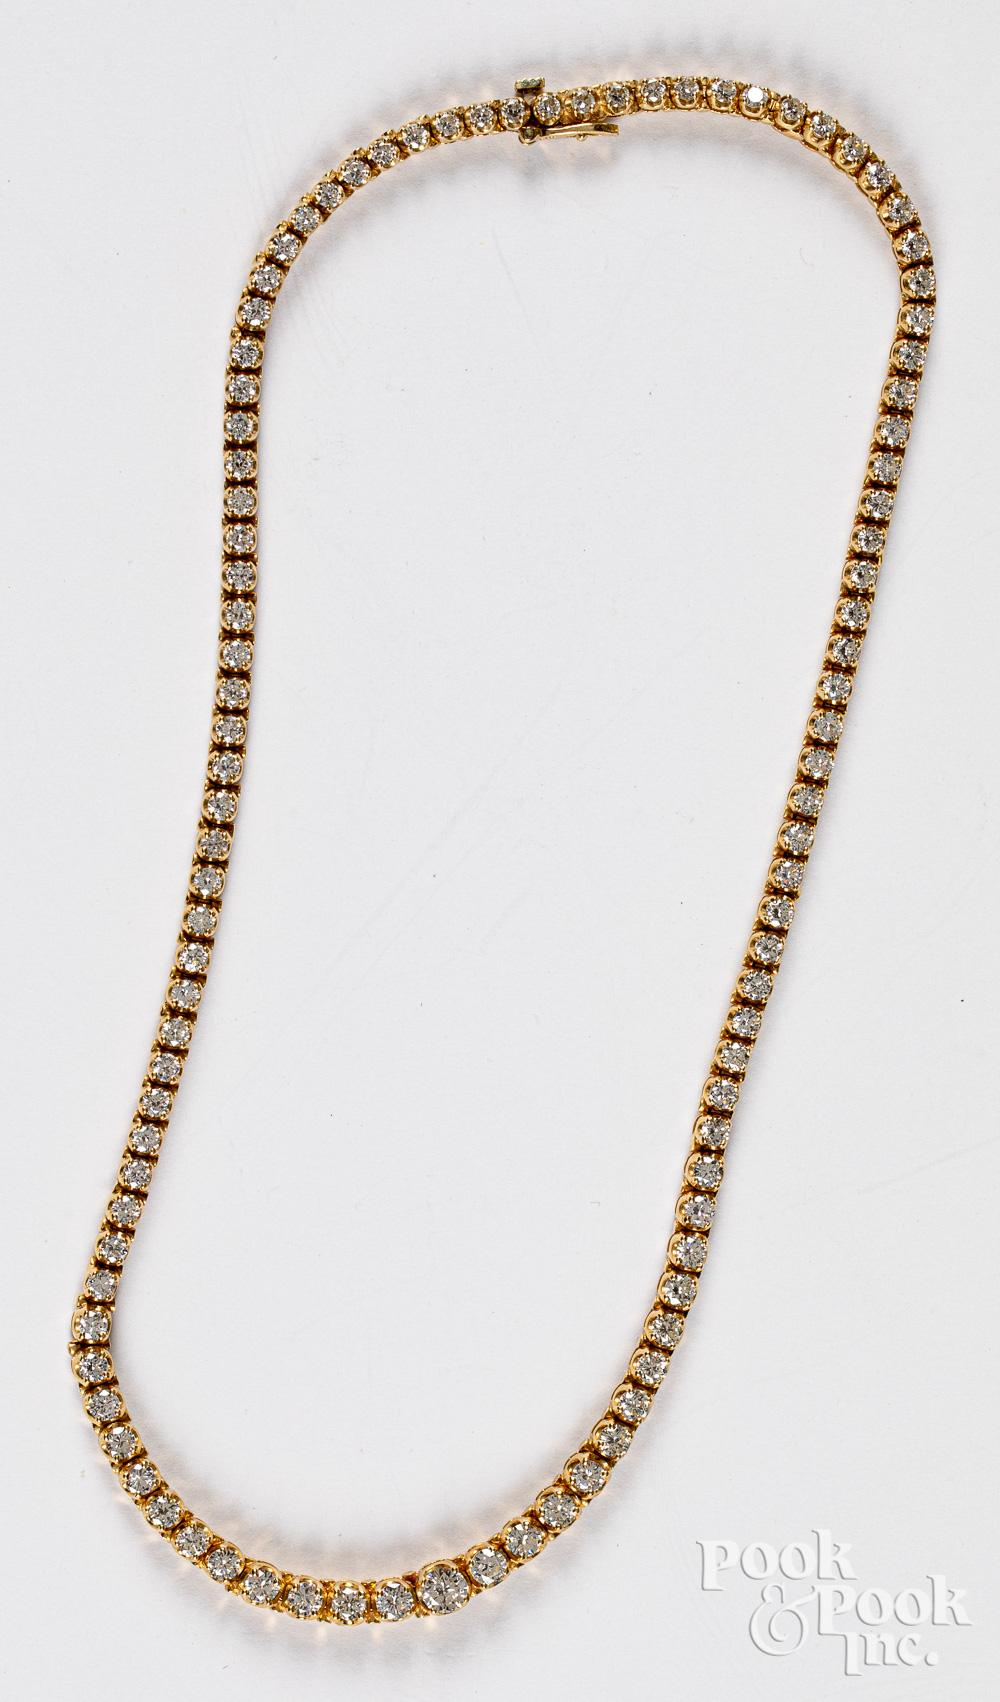 14K gold and diamond necklace, 21.7dwt.